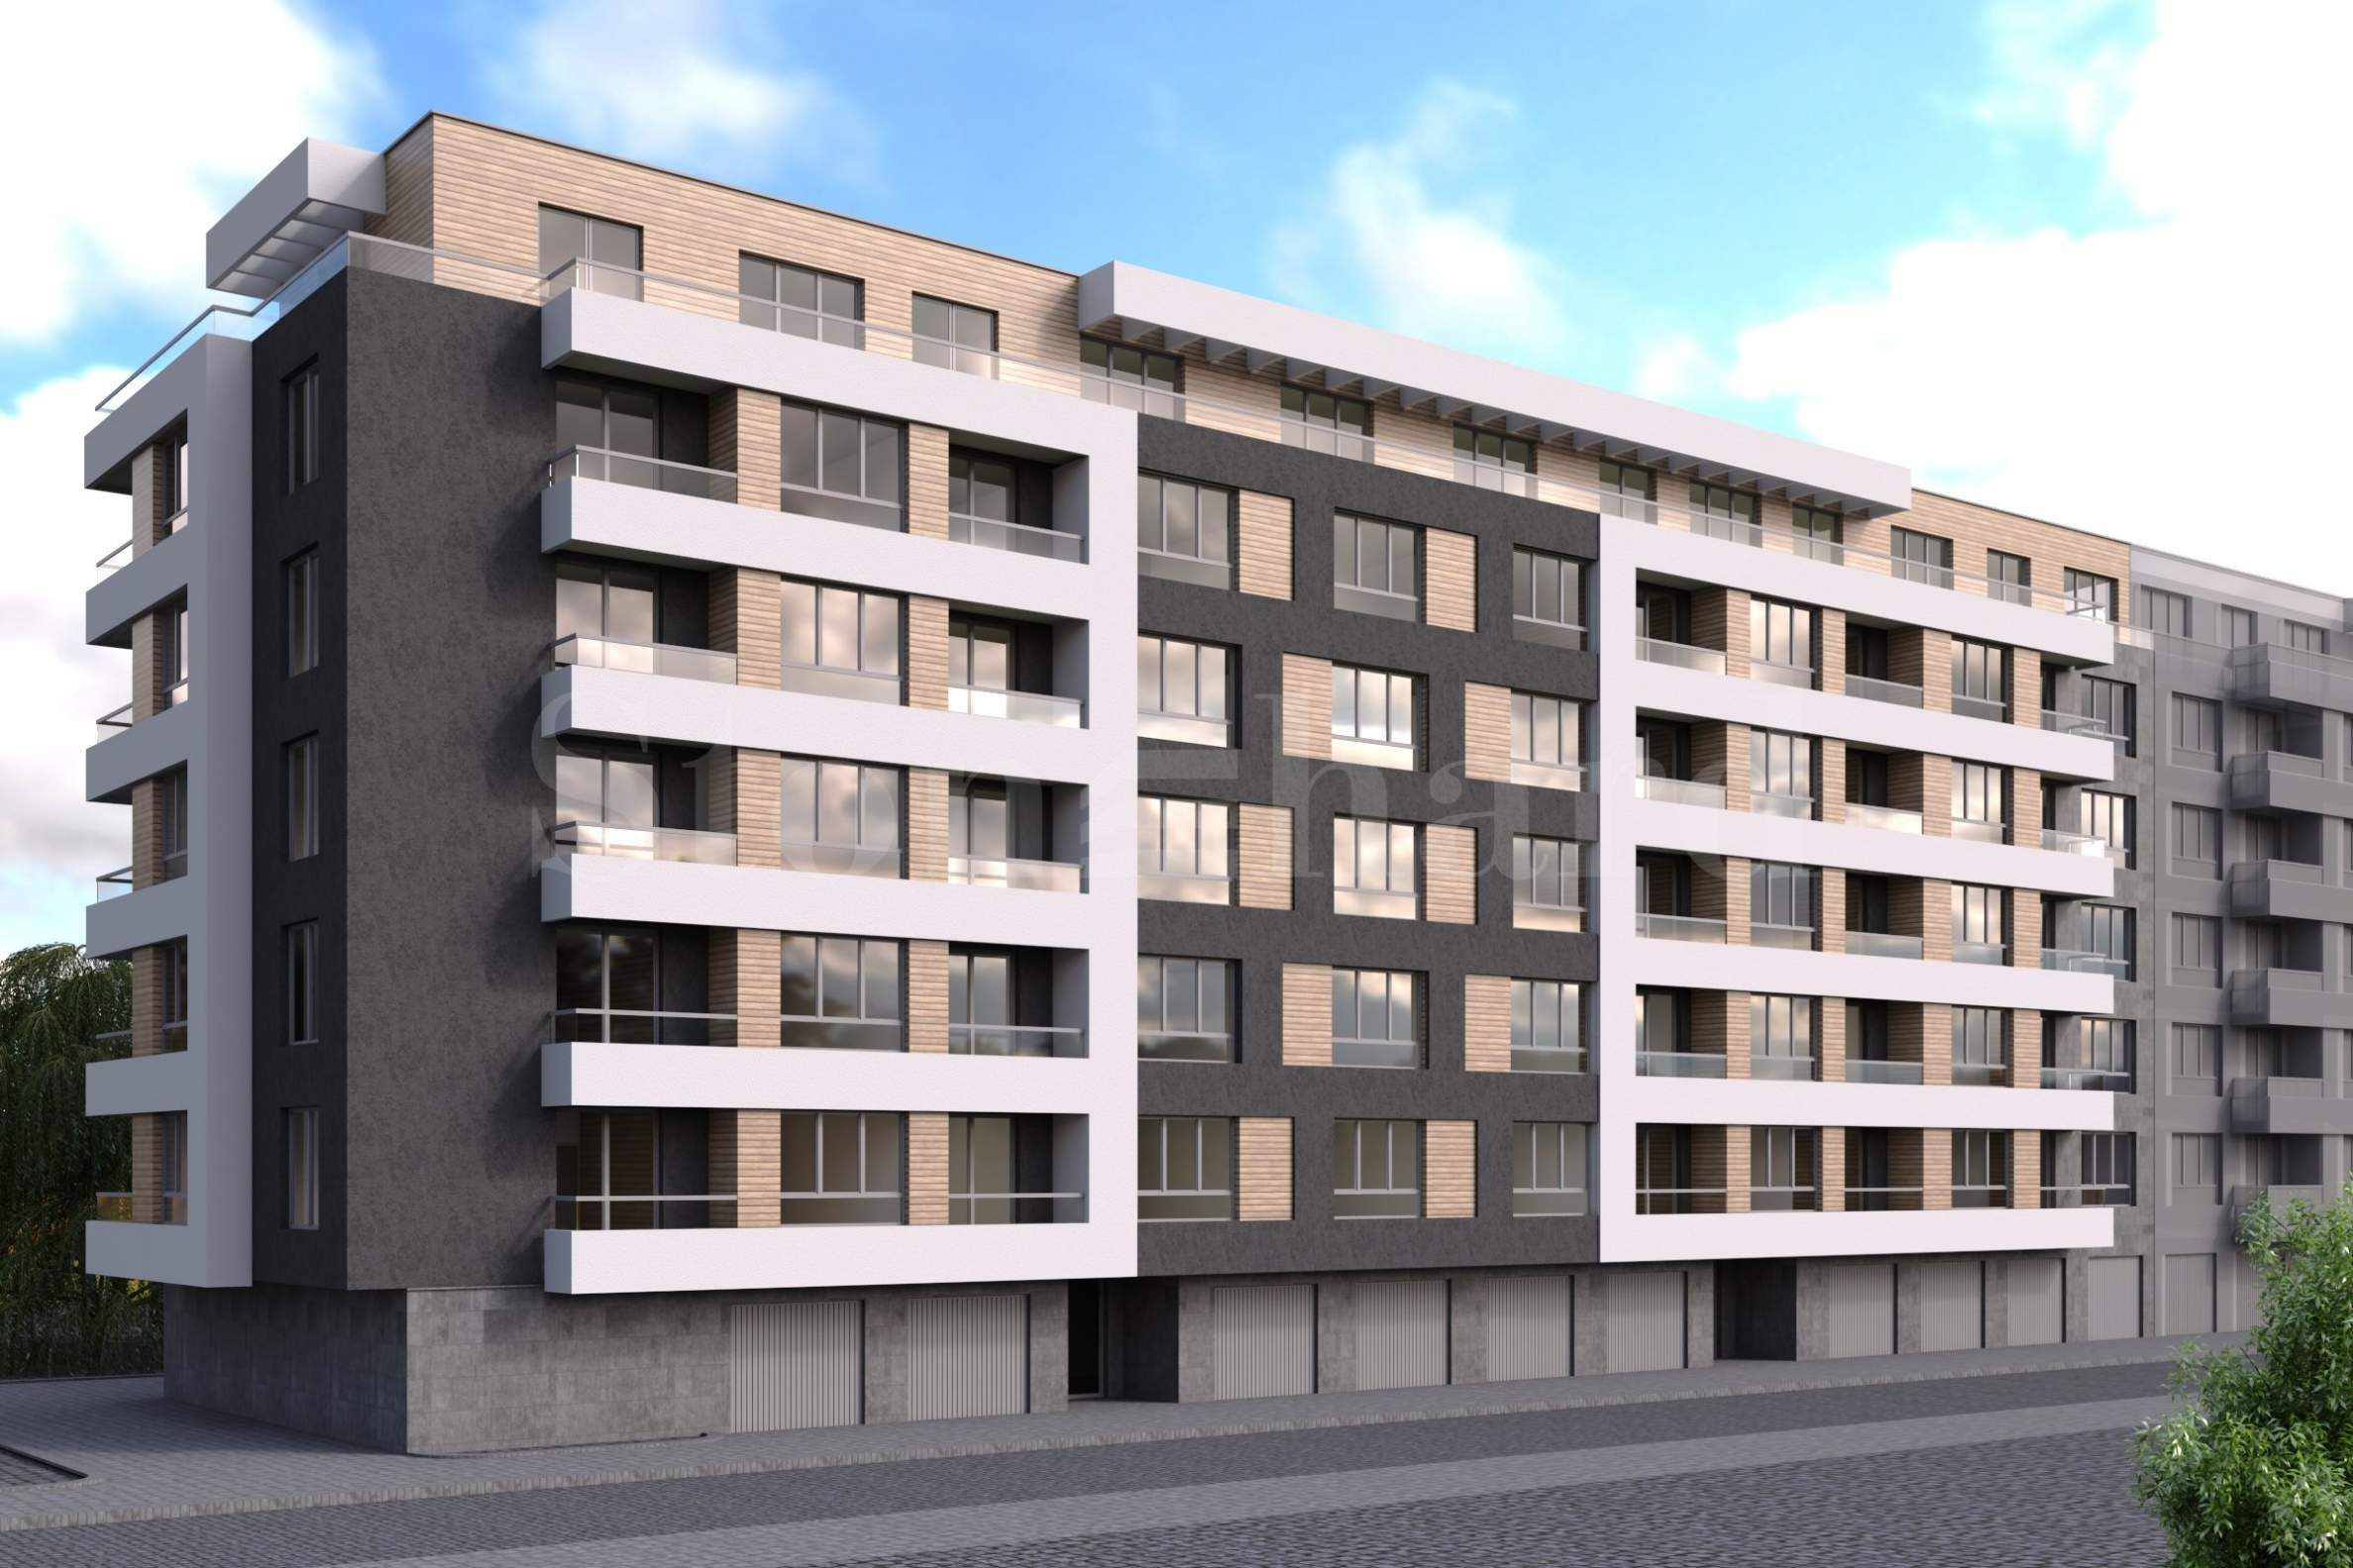 Apartments in a fast developing neighborhood1 - Stonehard